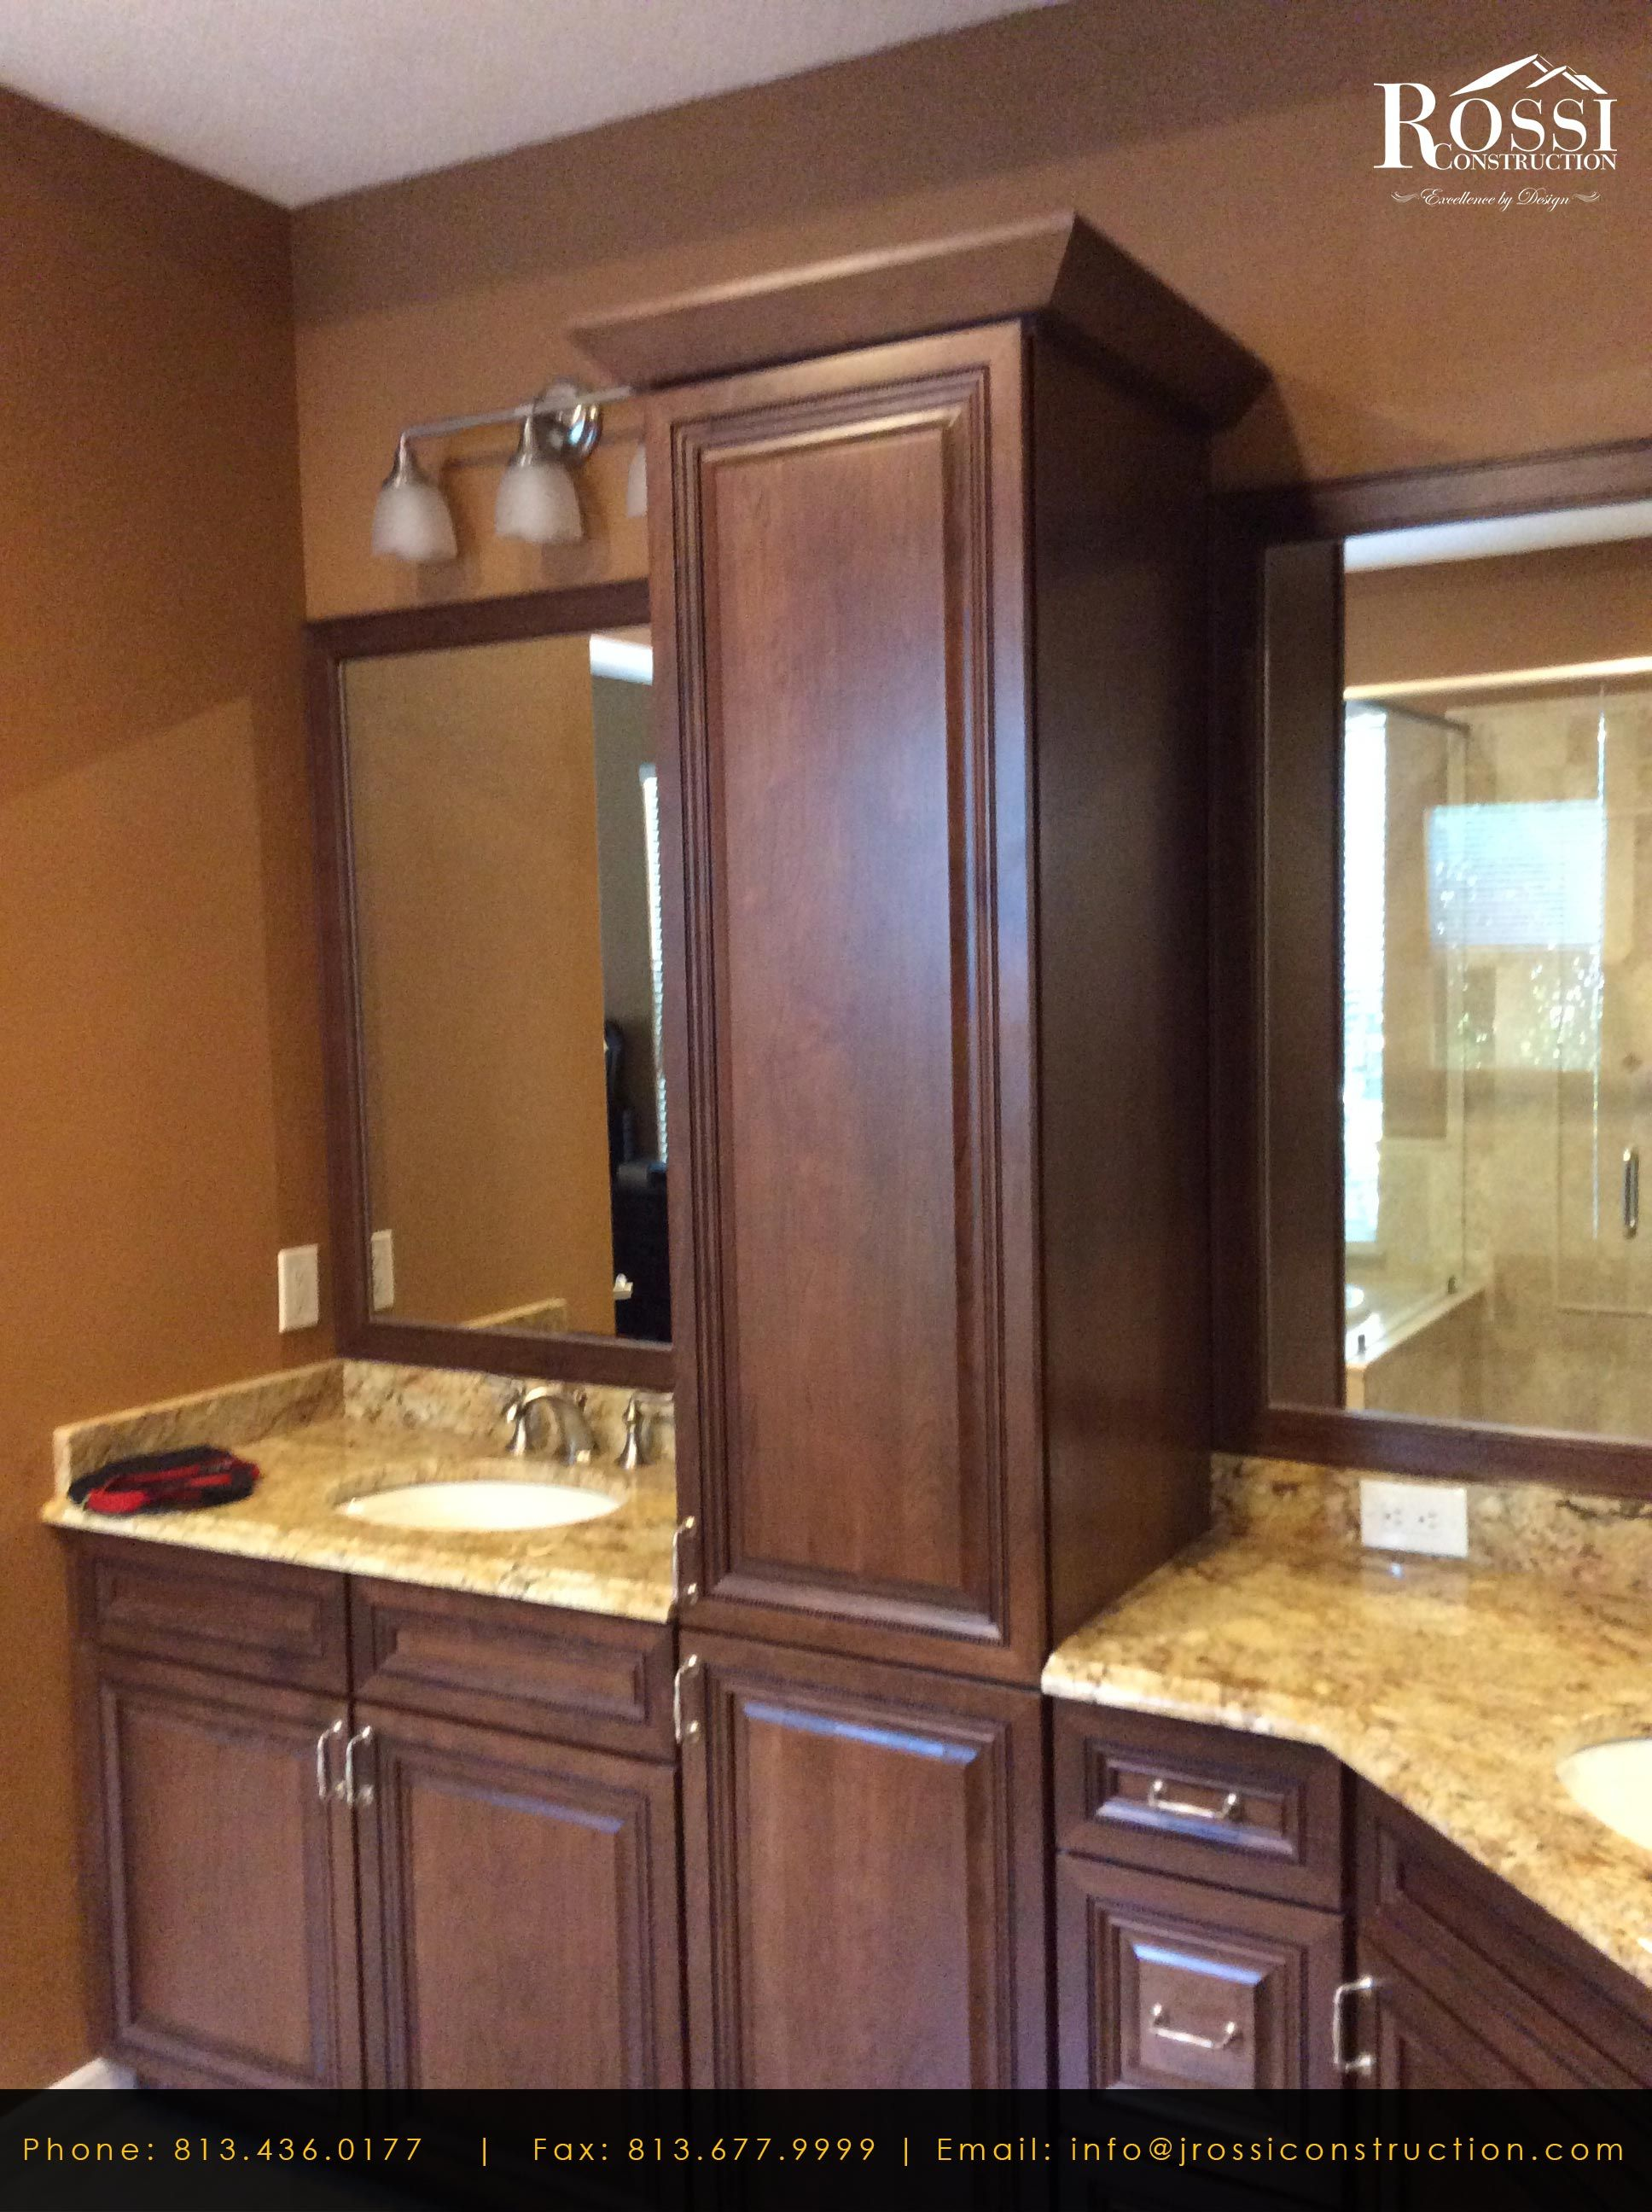 Rossi Construction a leading construction company in Tampa ...